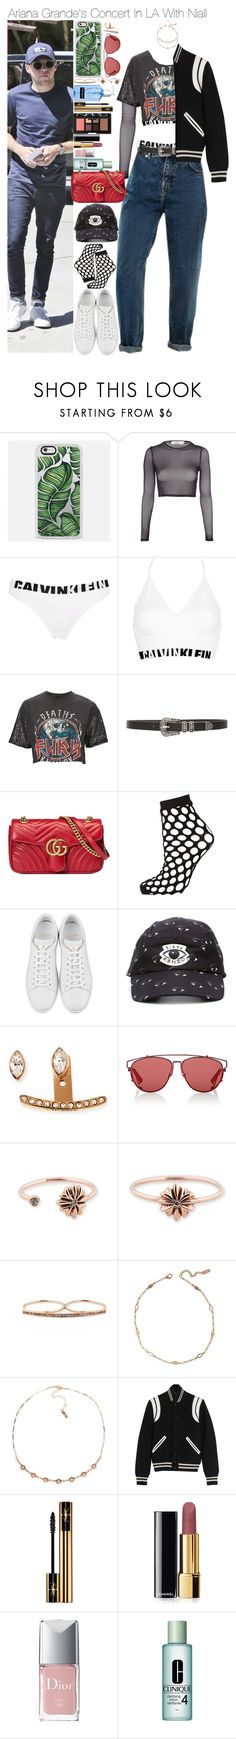 """""""Sin título #288"""" by novemberfourteen ❤ liked on Polyvore featuring beauty, Oh My Love, Calvin Klein Underwear, And Finally, Lovers + Friends, Gucci, Topshop, Yves Saint Laurent, Kenzo and Vita Fede"""